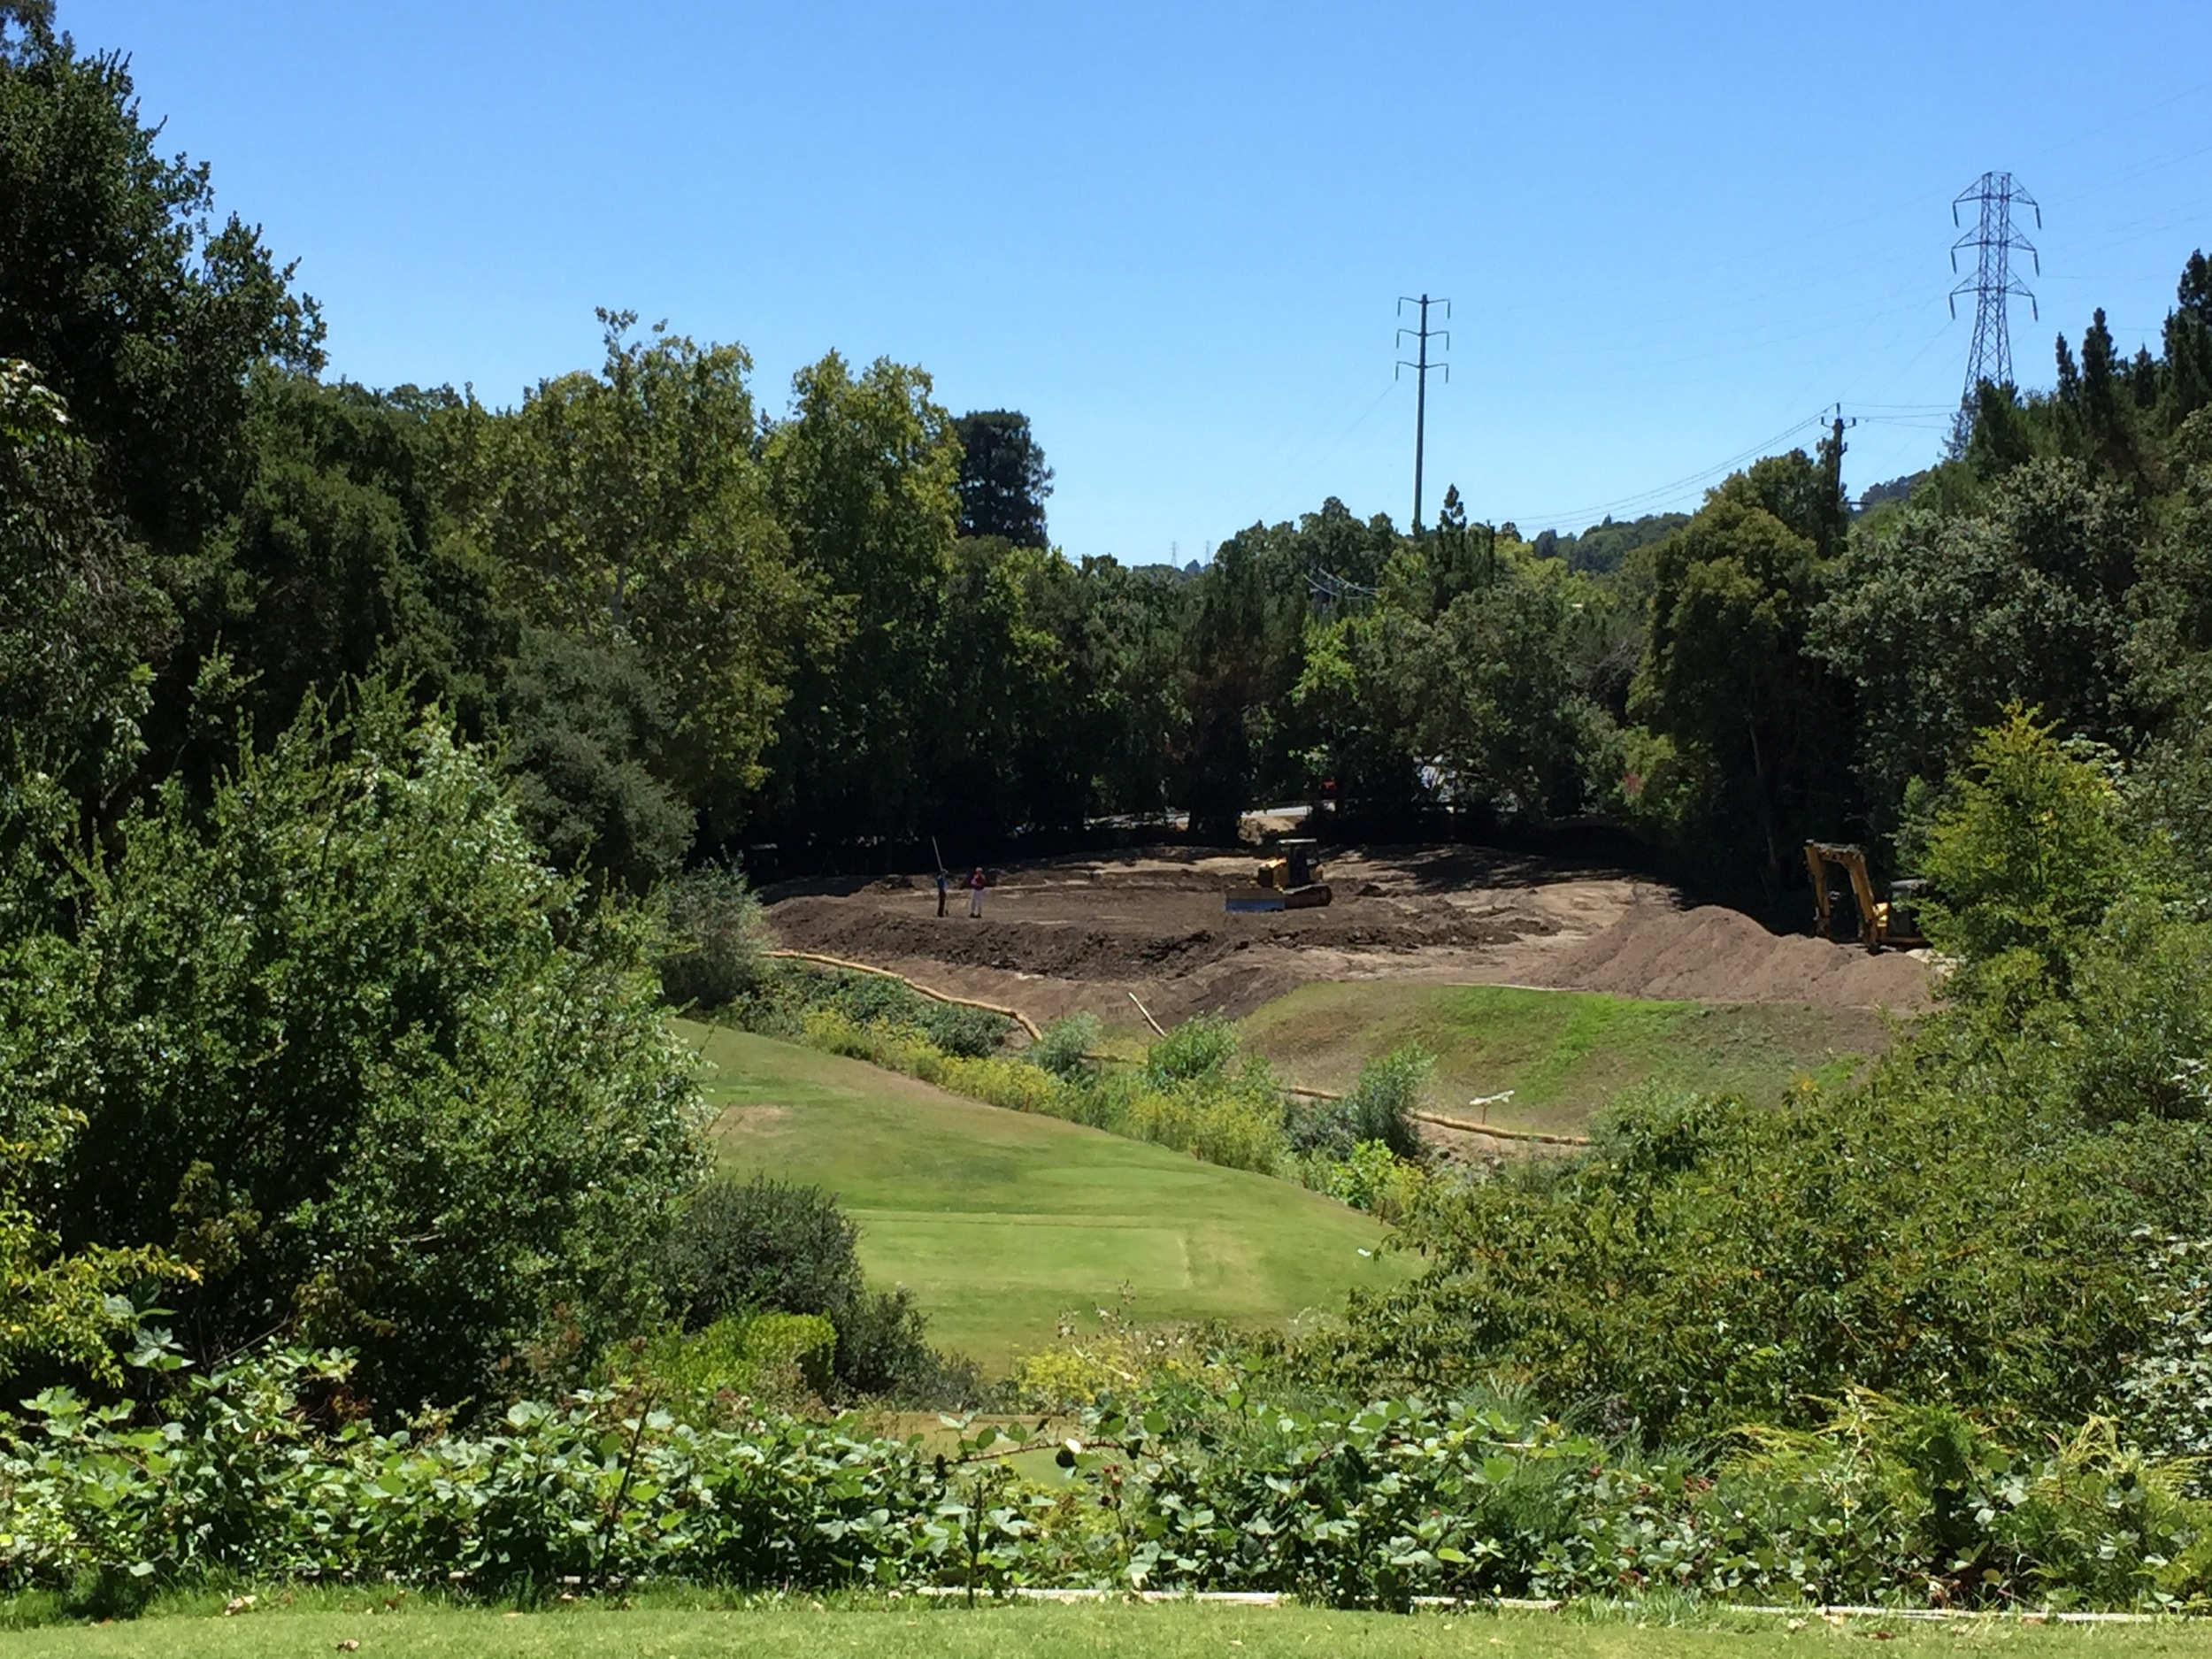 hochstein-design-orinda-cc-hole-15-construction-1.jpg